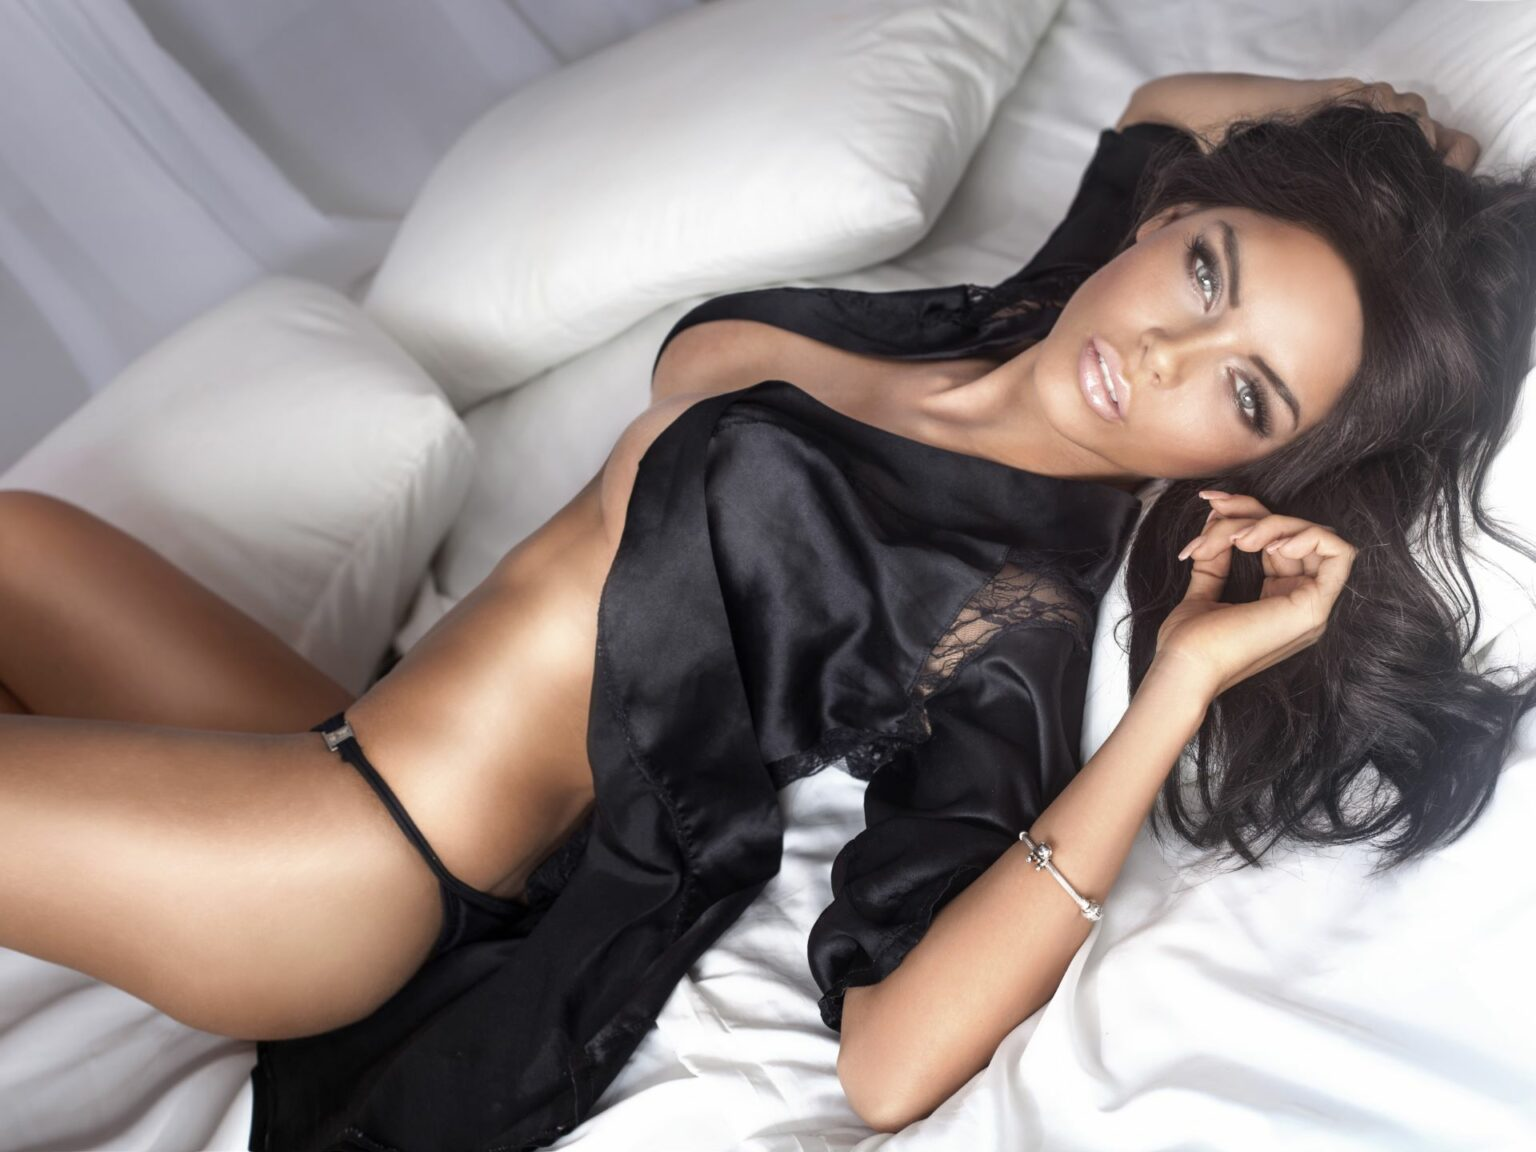 Hot sugar Baby wants sugar daddy, Come and Get Yourself a Girl to Brag About!